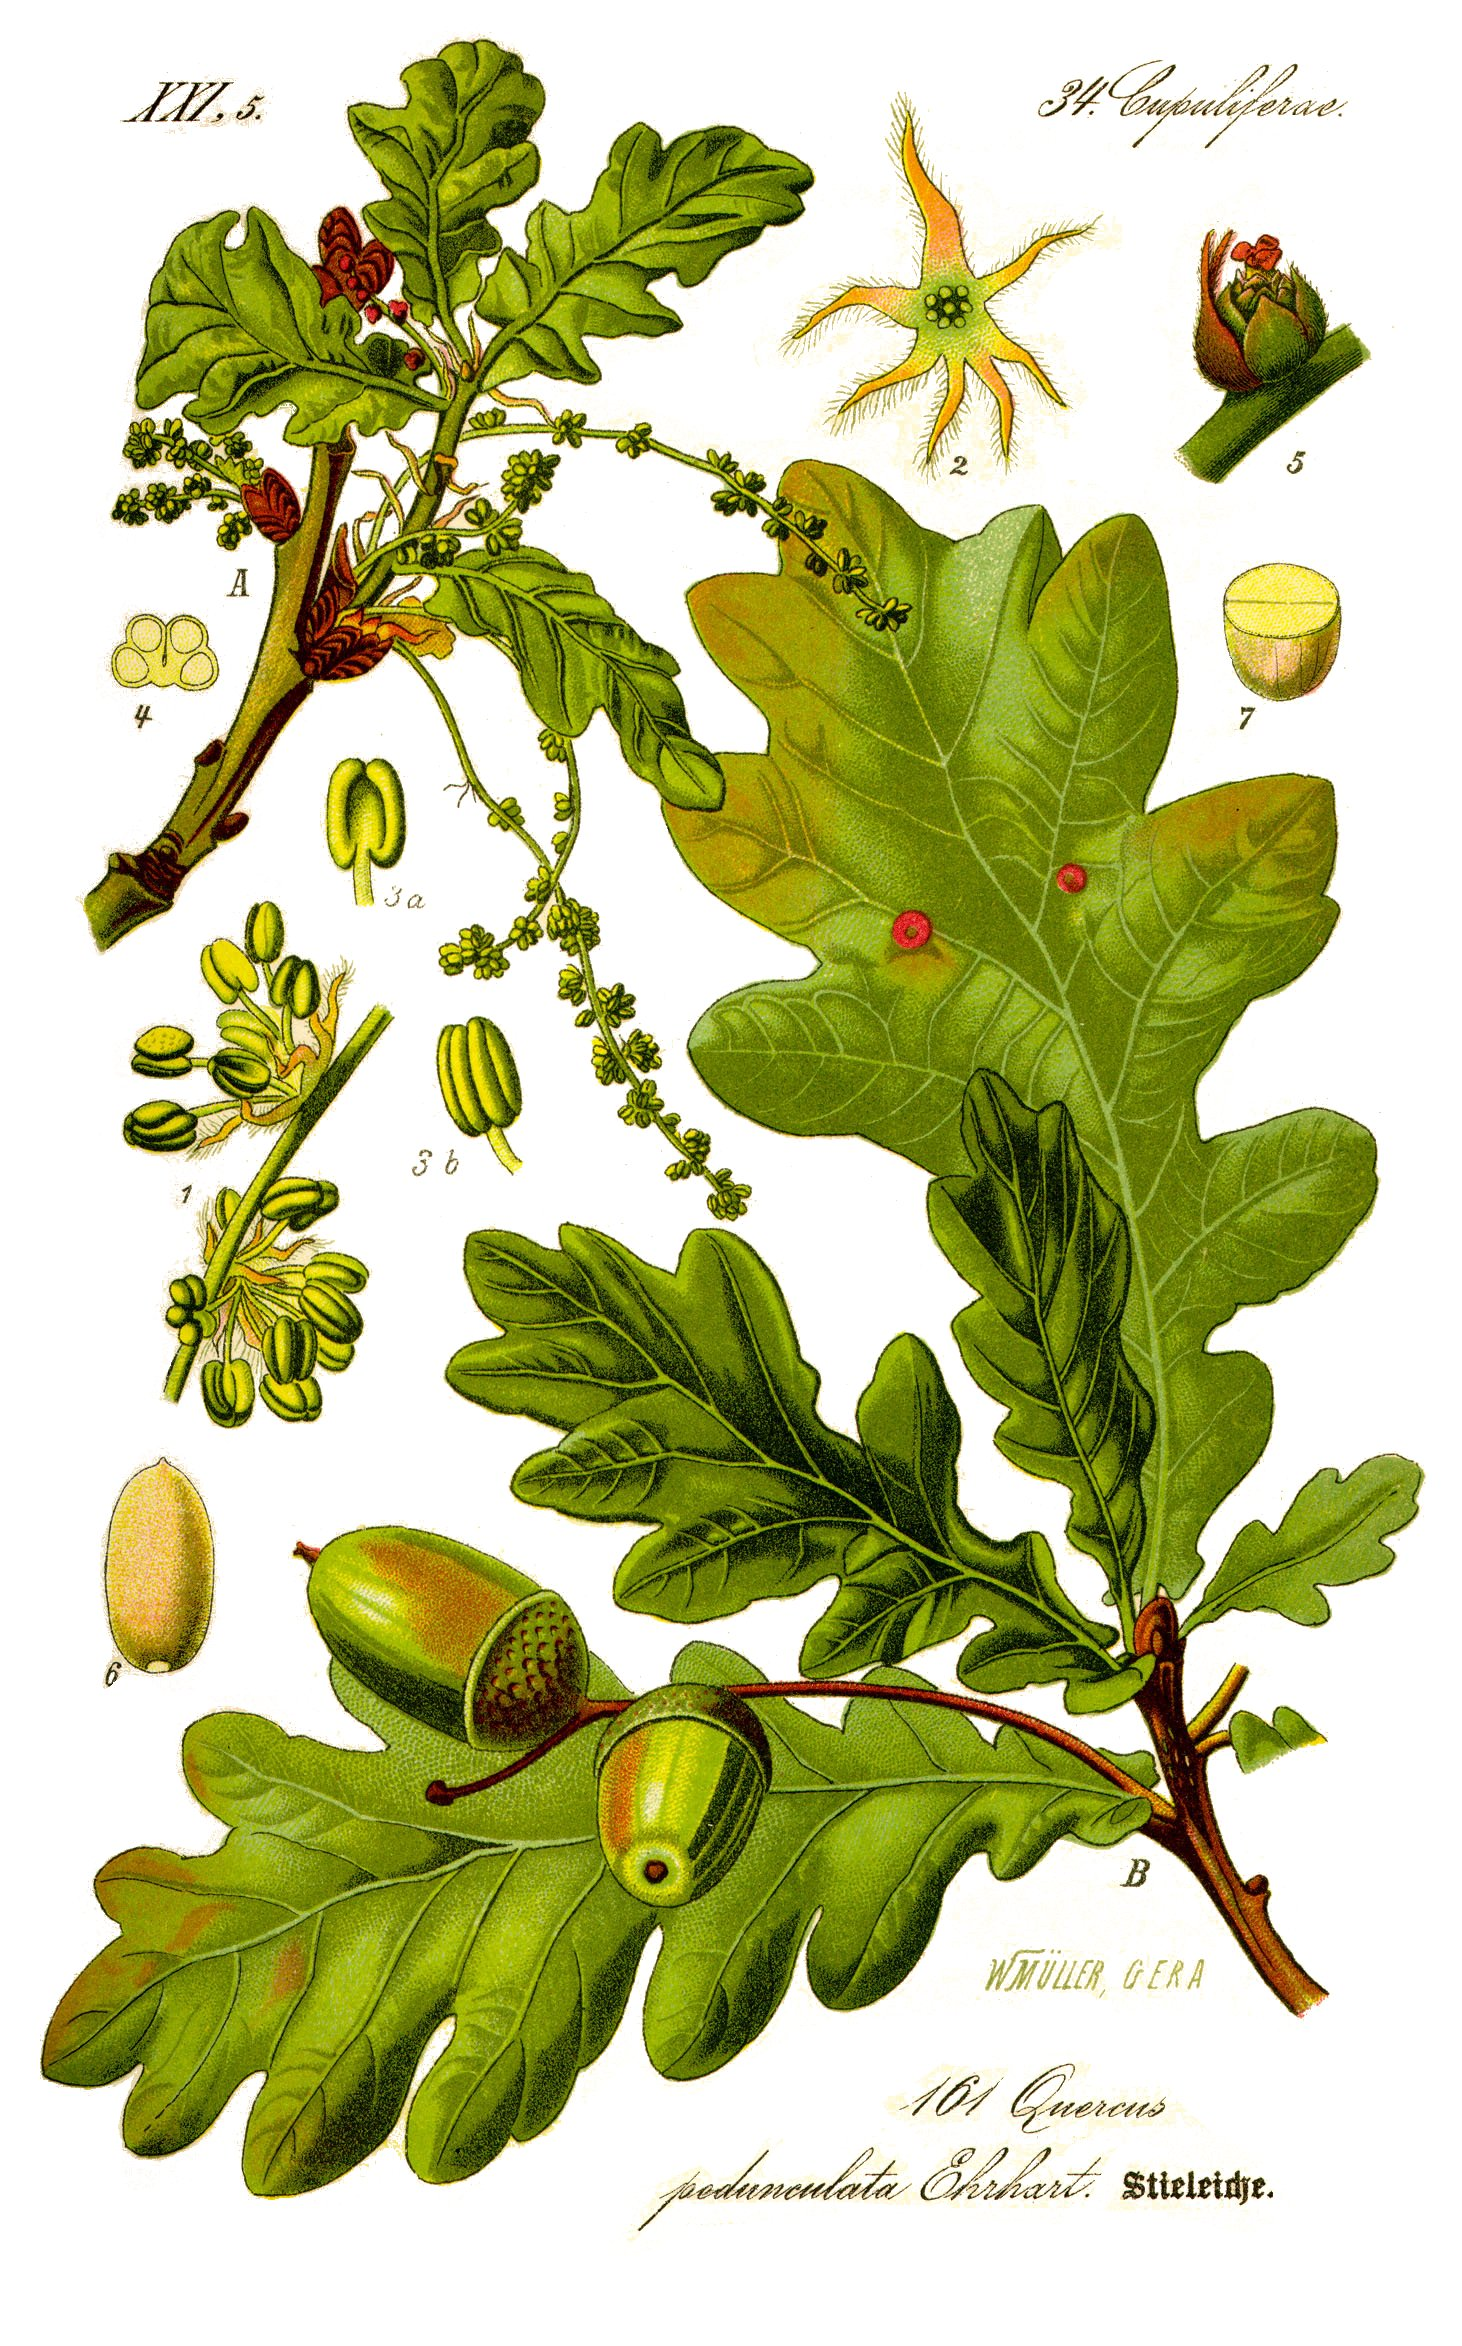 http://upload.wikimedia.org/wikipedia/commons/7/76/Illustration_Quercus_robur0_clean.jpg